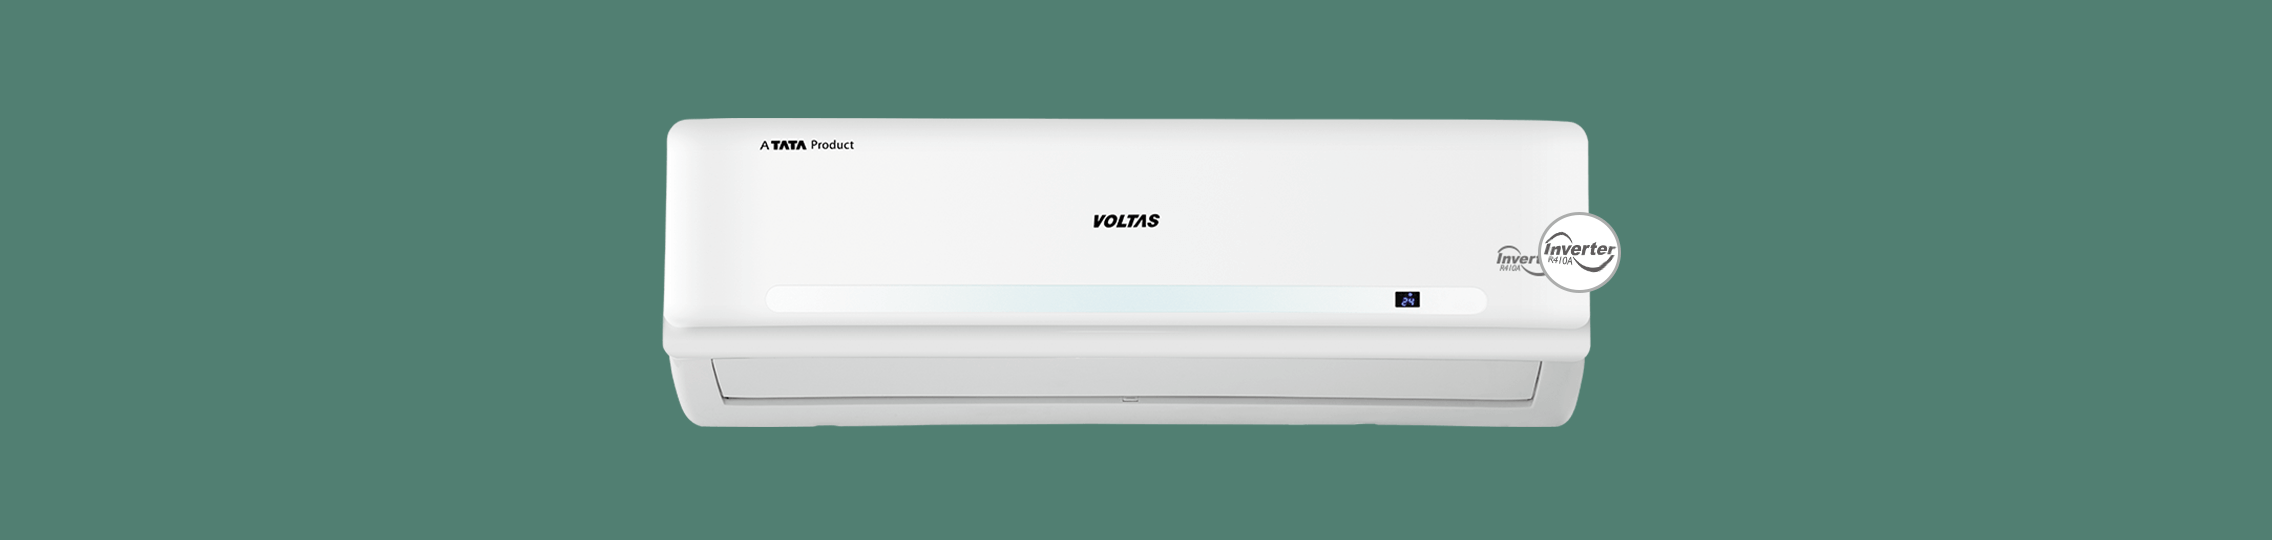 What Are The Major Advantages Of Inverter Air Conditioners?